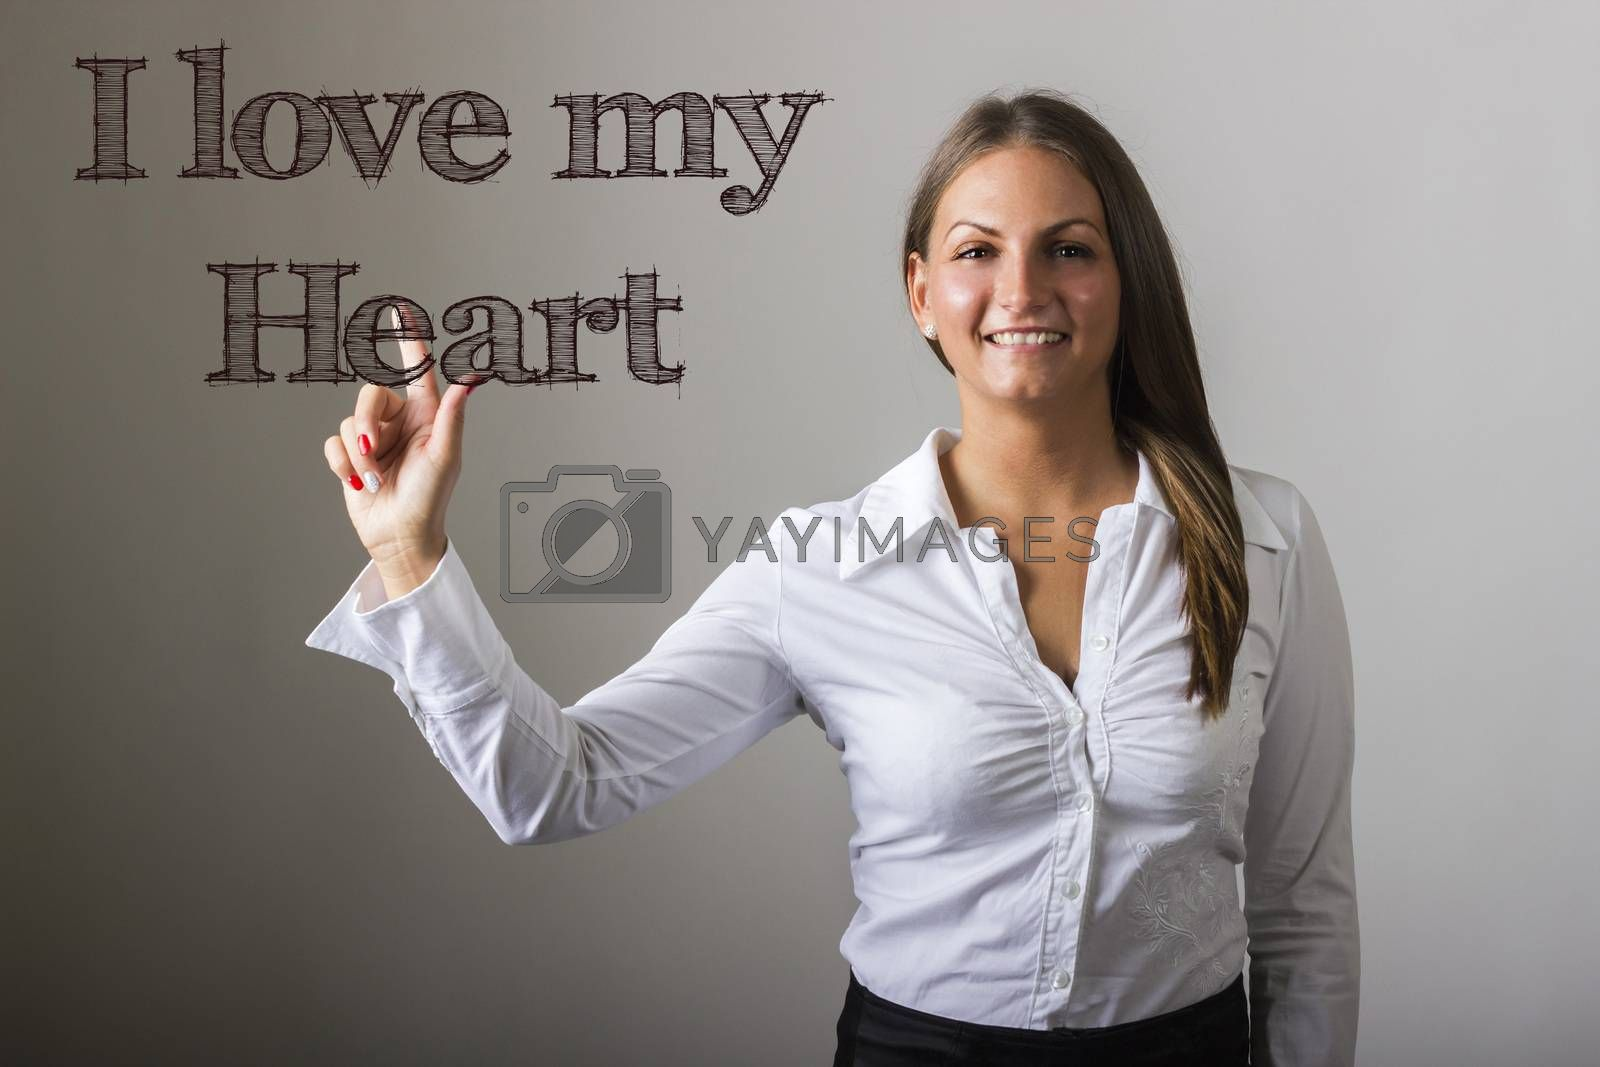 I love my Heart - Beautiful girl touching text on transparent surface - horizontal image